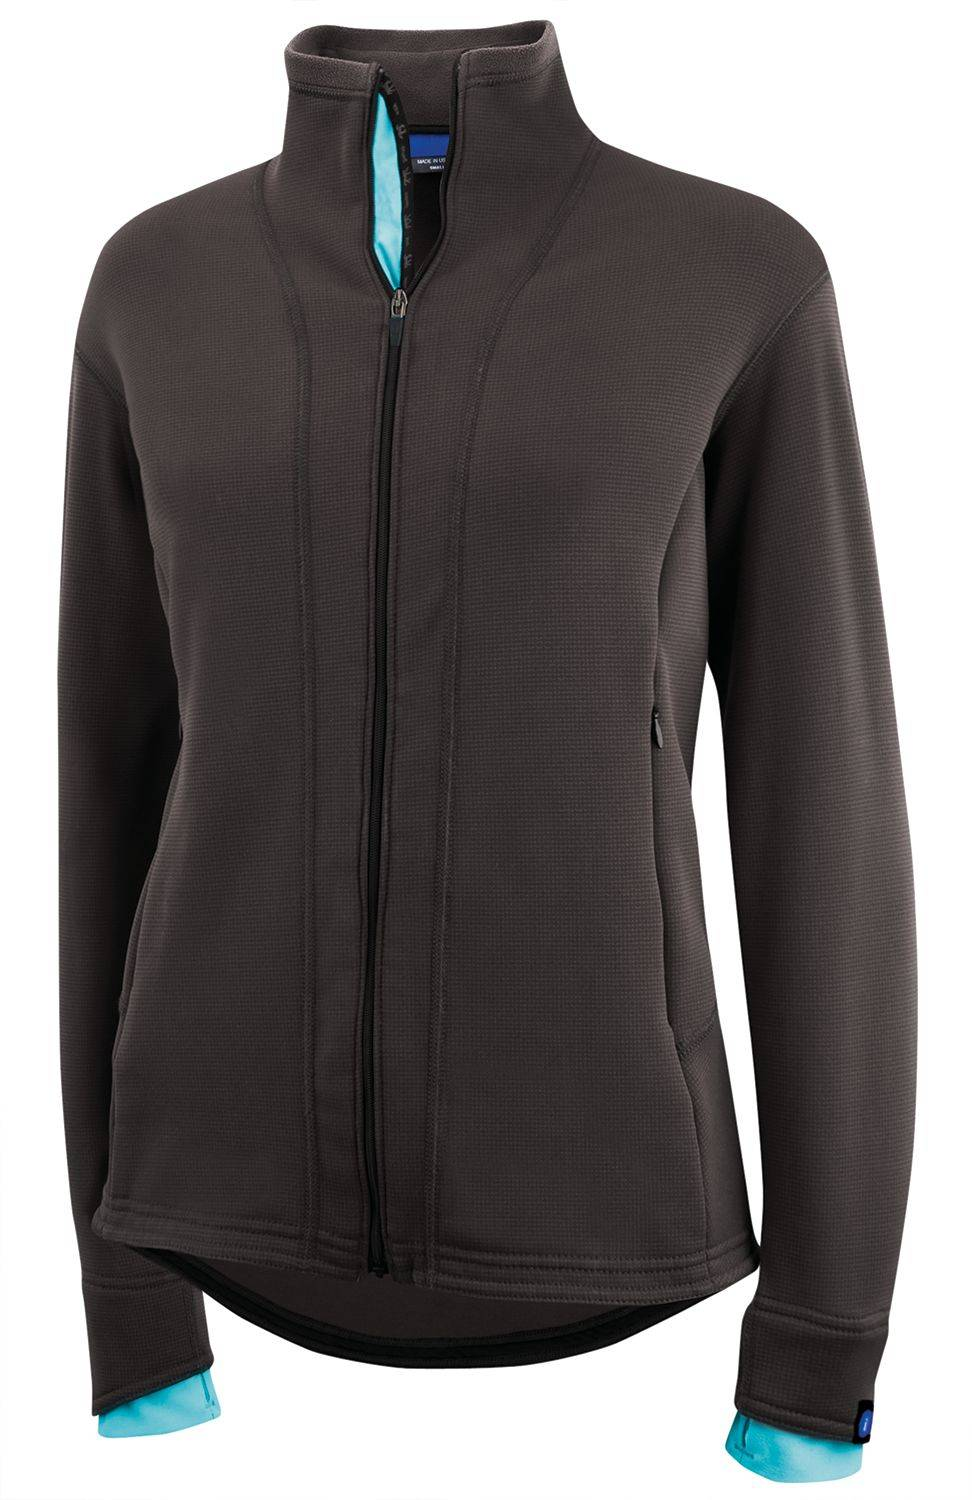 Irideon Wind Pro 3 Season Jacket - Ladies